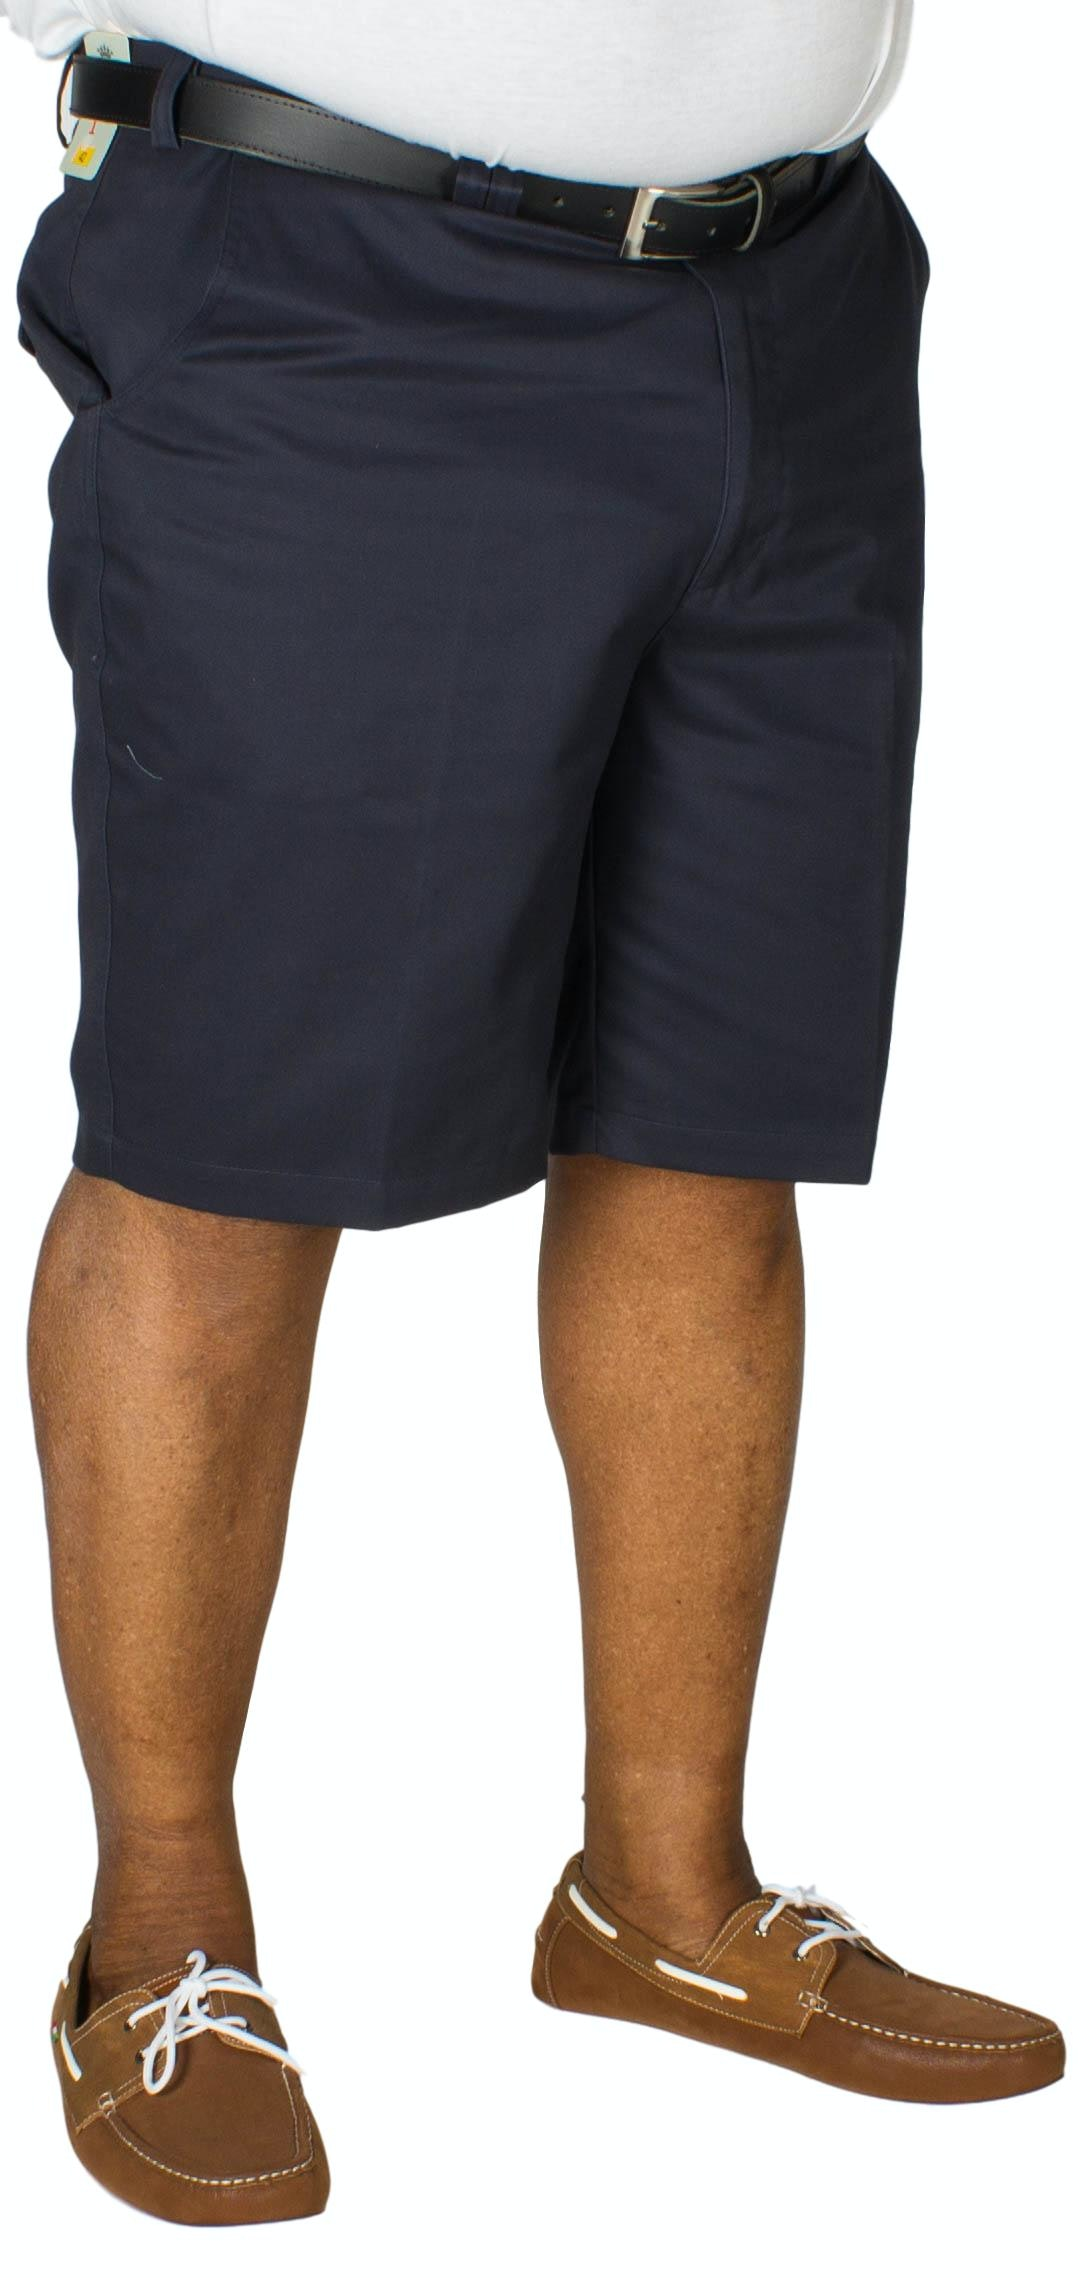 Carabou Expand-A-Band Chino Short Navy